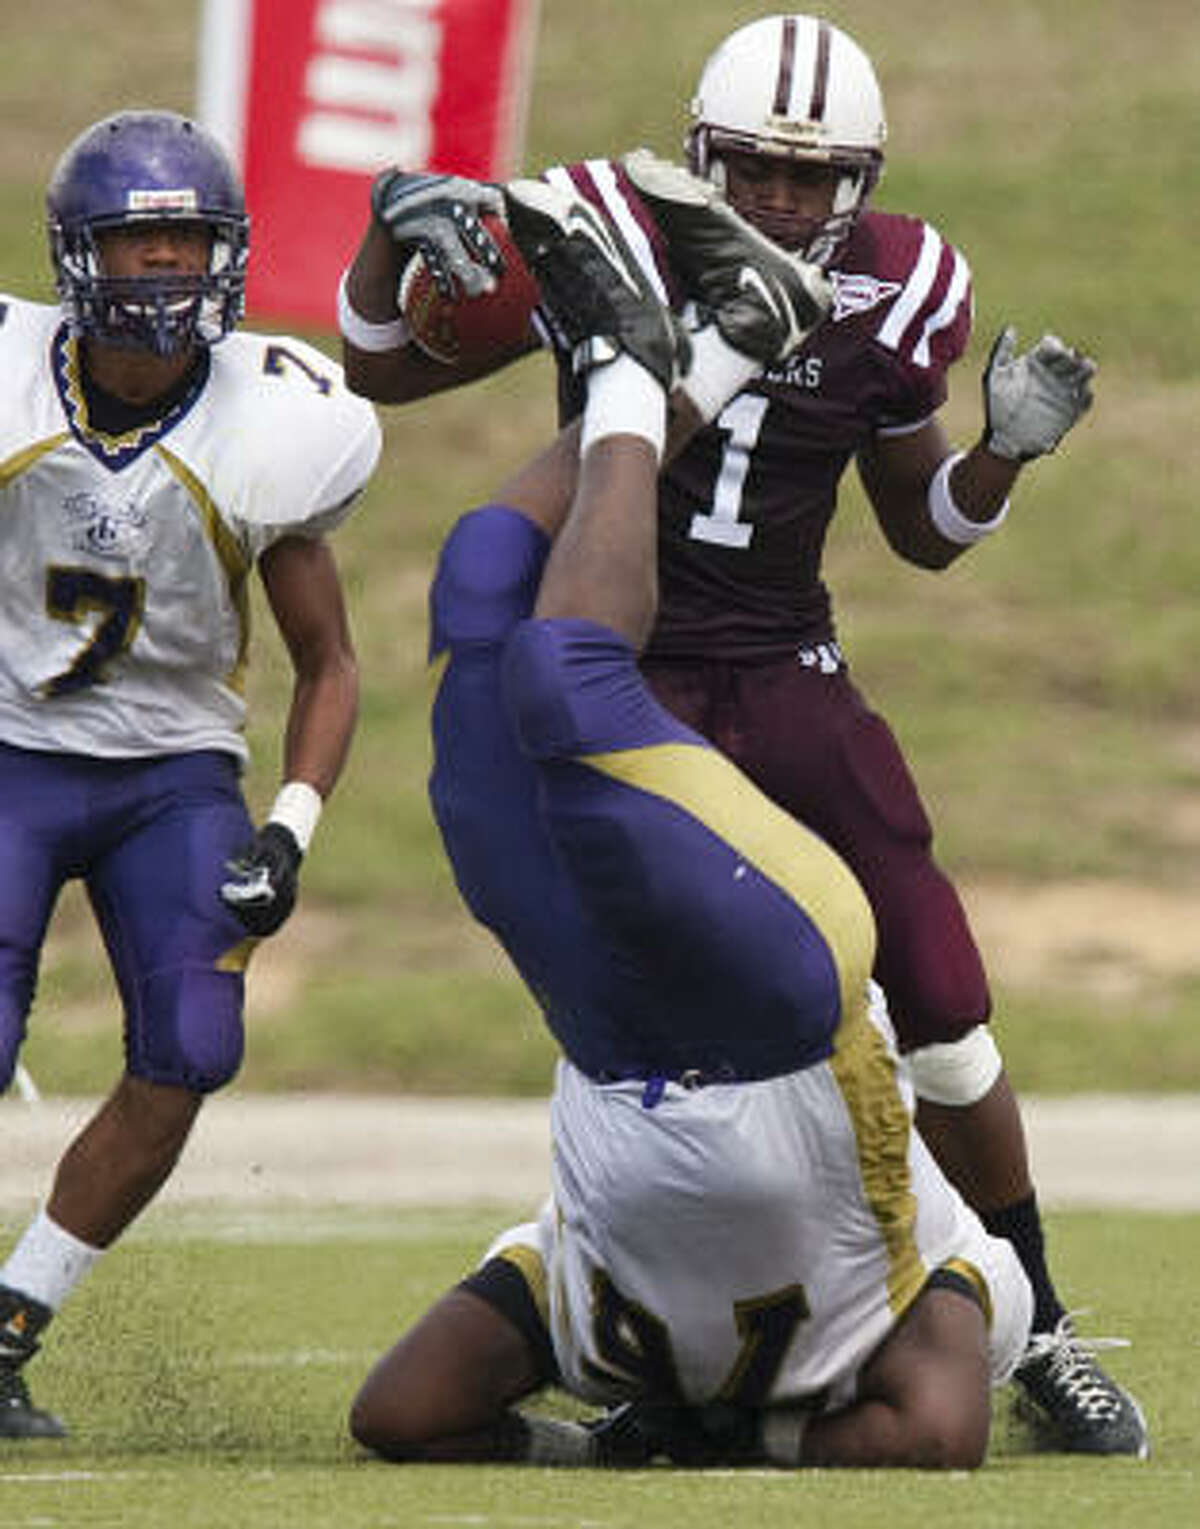 TSU receiver Joe Anderson tries to avoid Texas College defender Brandon Bishop, who is overturned trying to make the tackle during the third quarter of the Tigers' 75-6 victory against Texas College at Delmar Stadium on Saturday.